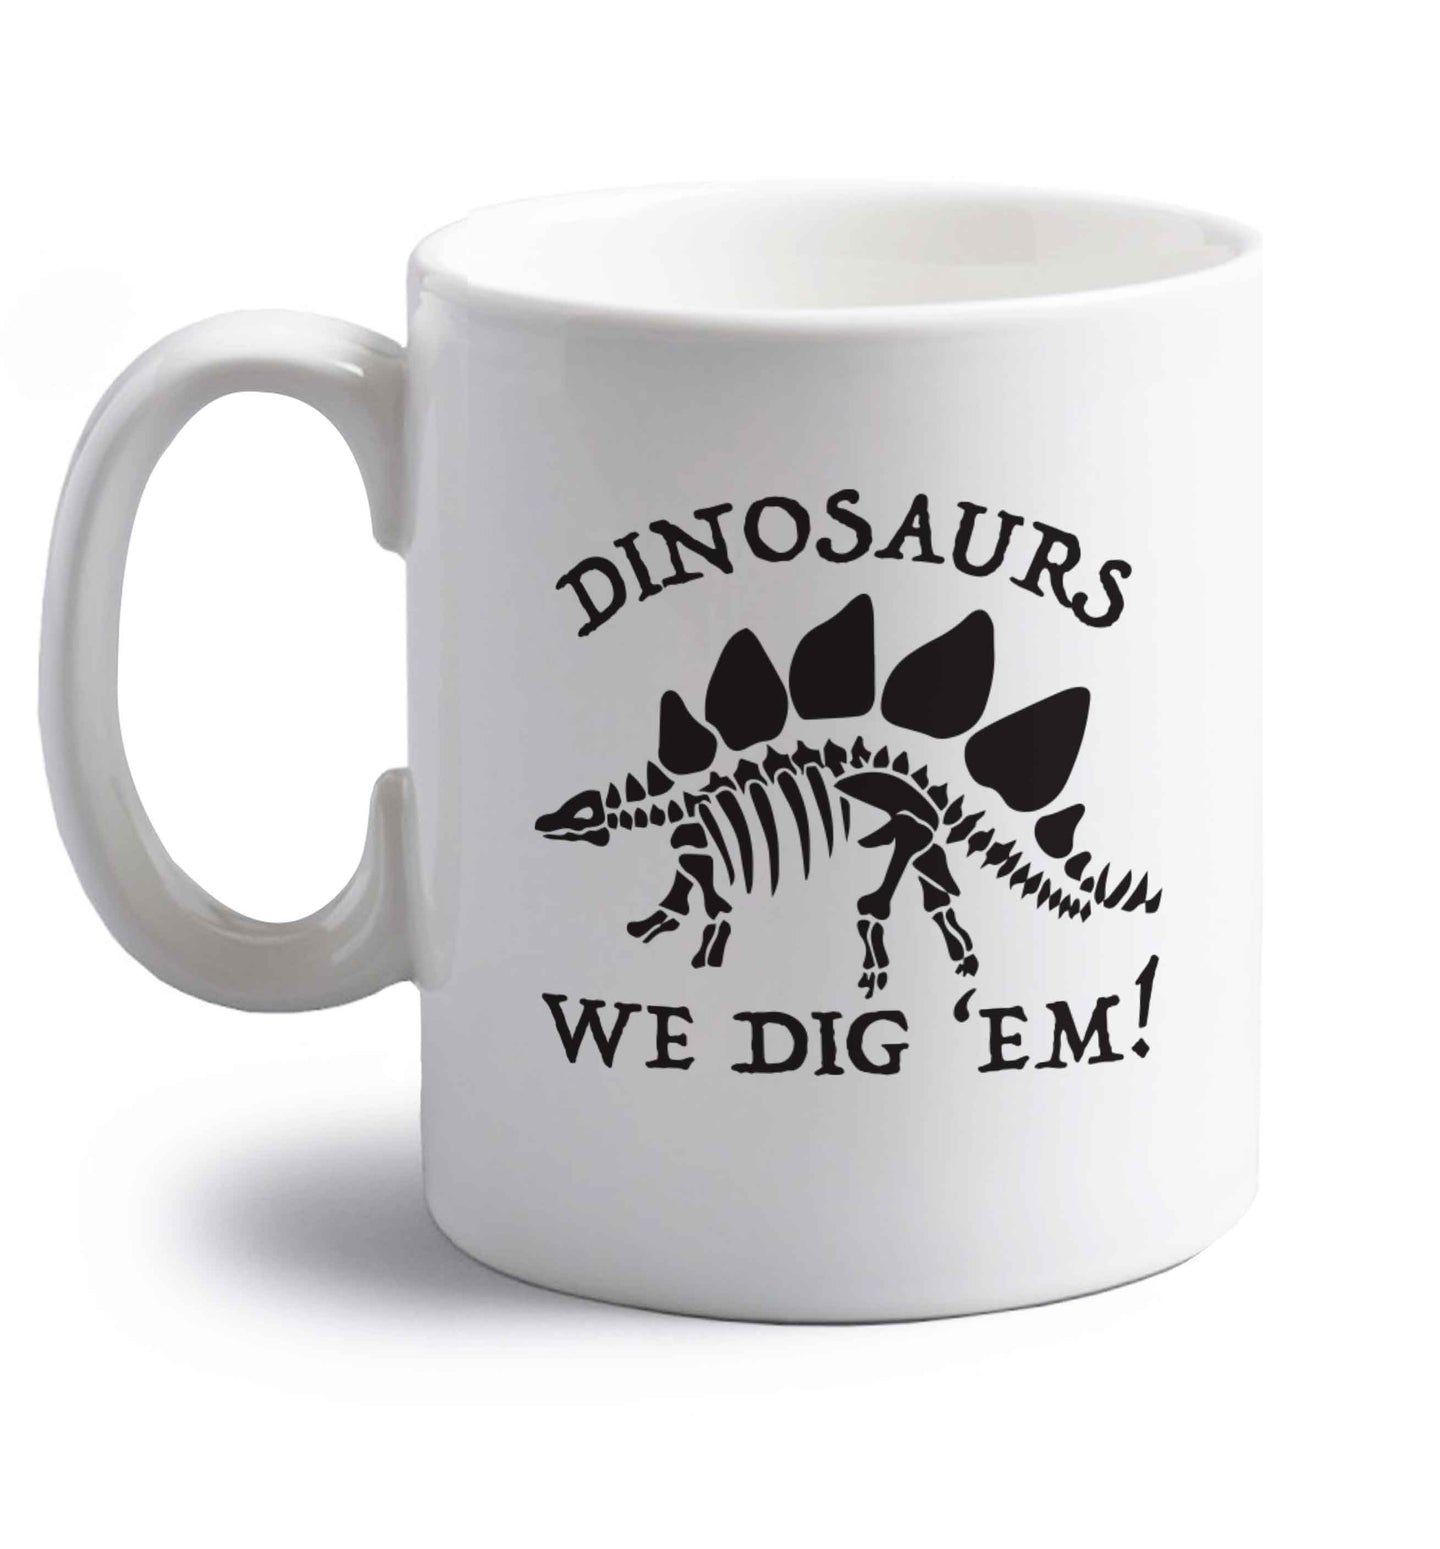 Dinosaurs we dig 'em! right handed white ceramic mug